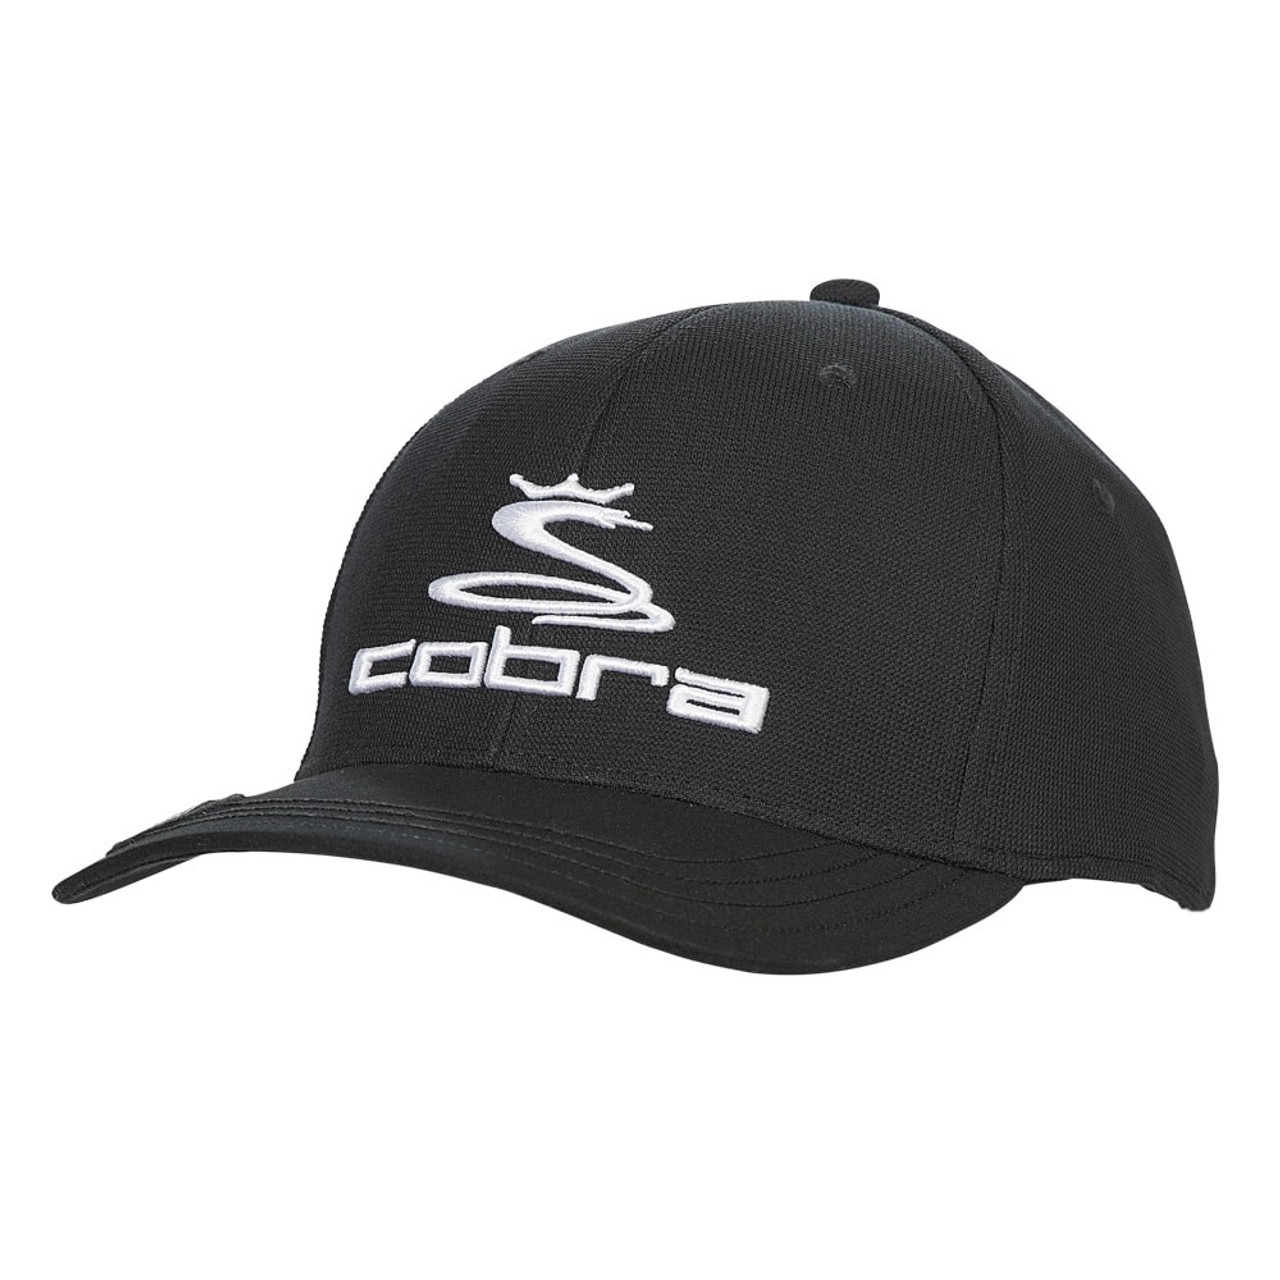 Cobra Ball Marker Adjustable Cap - Black